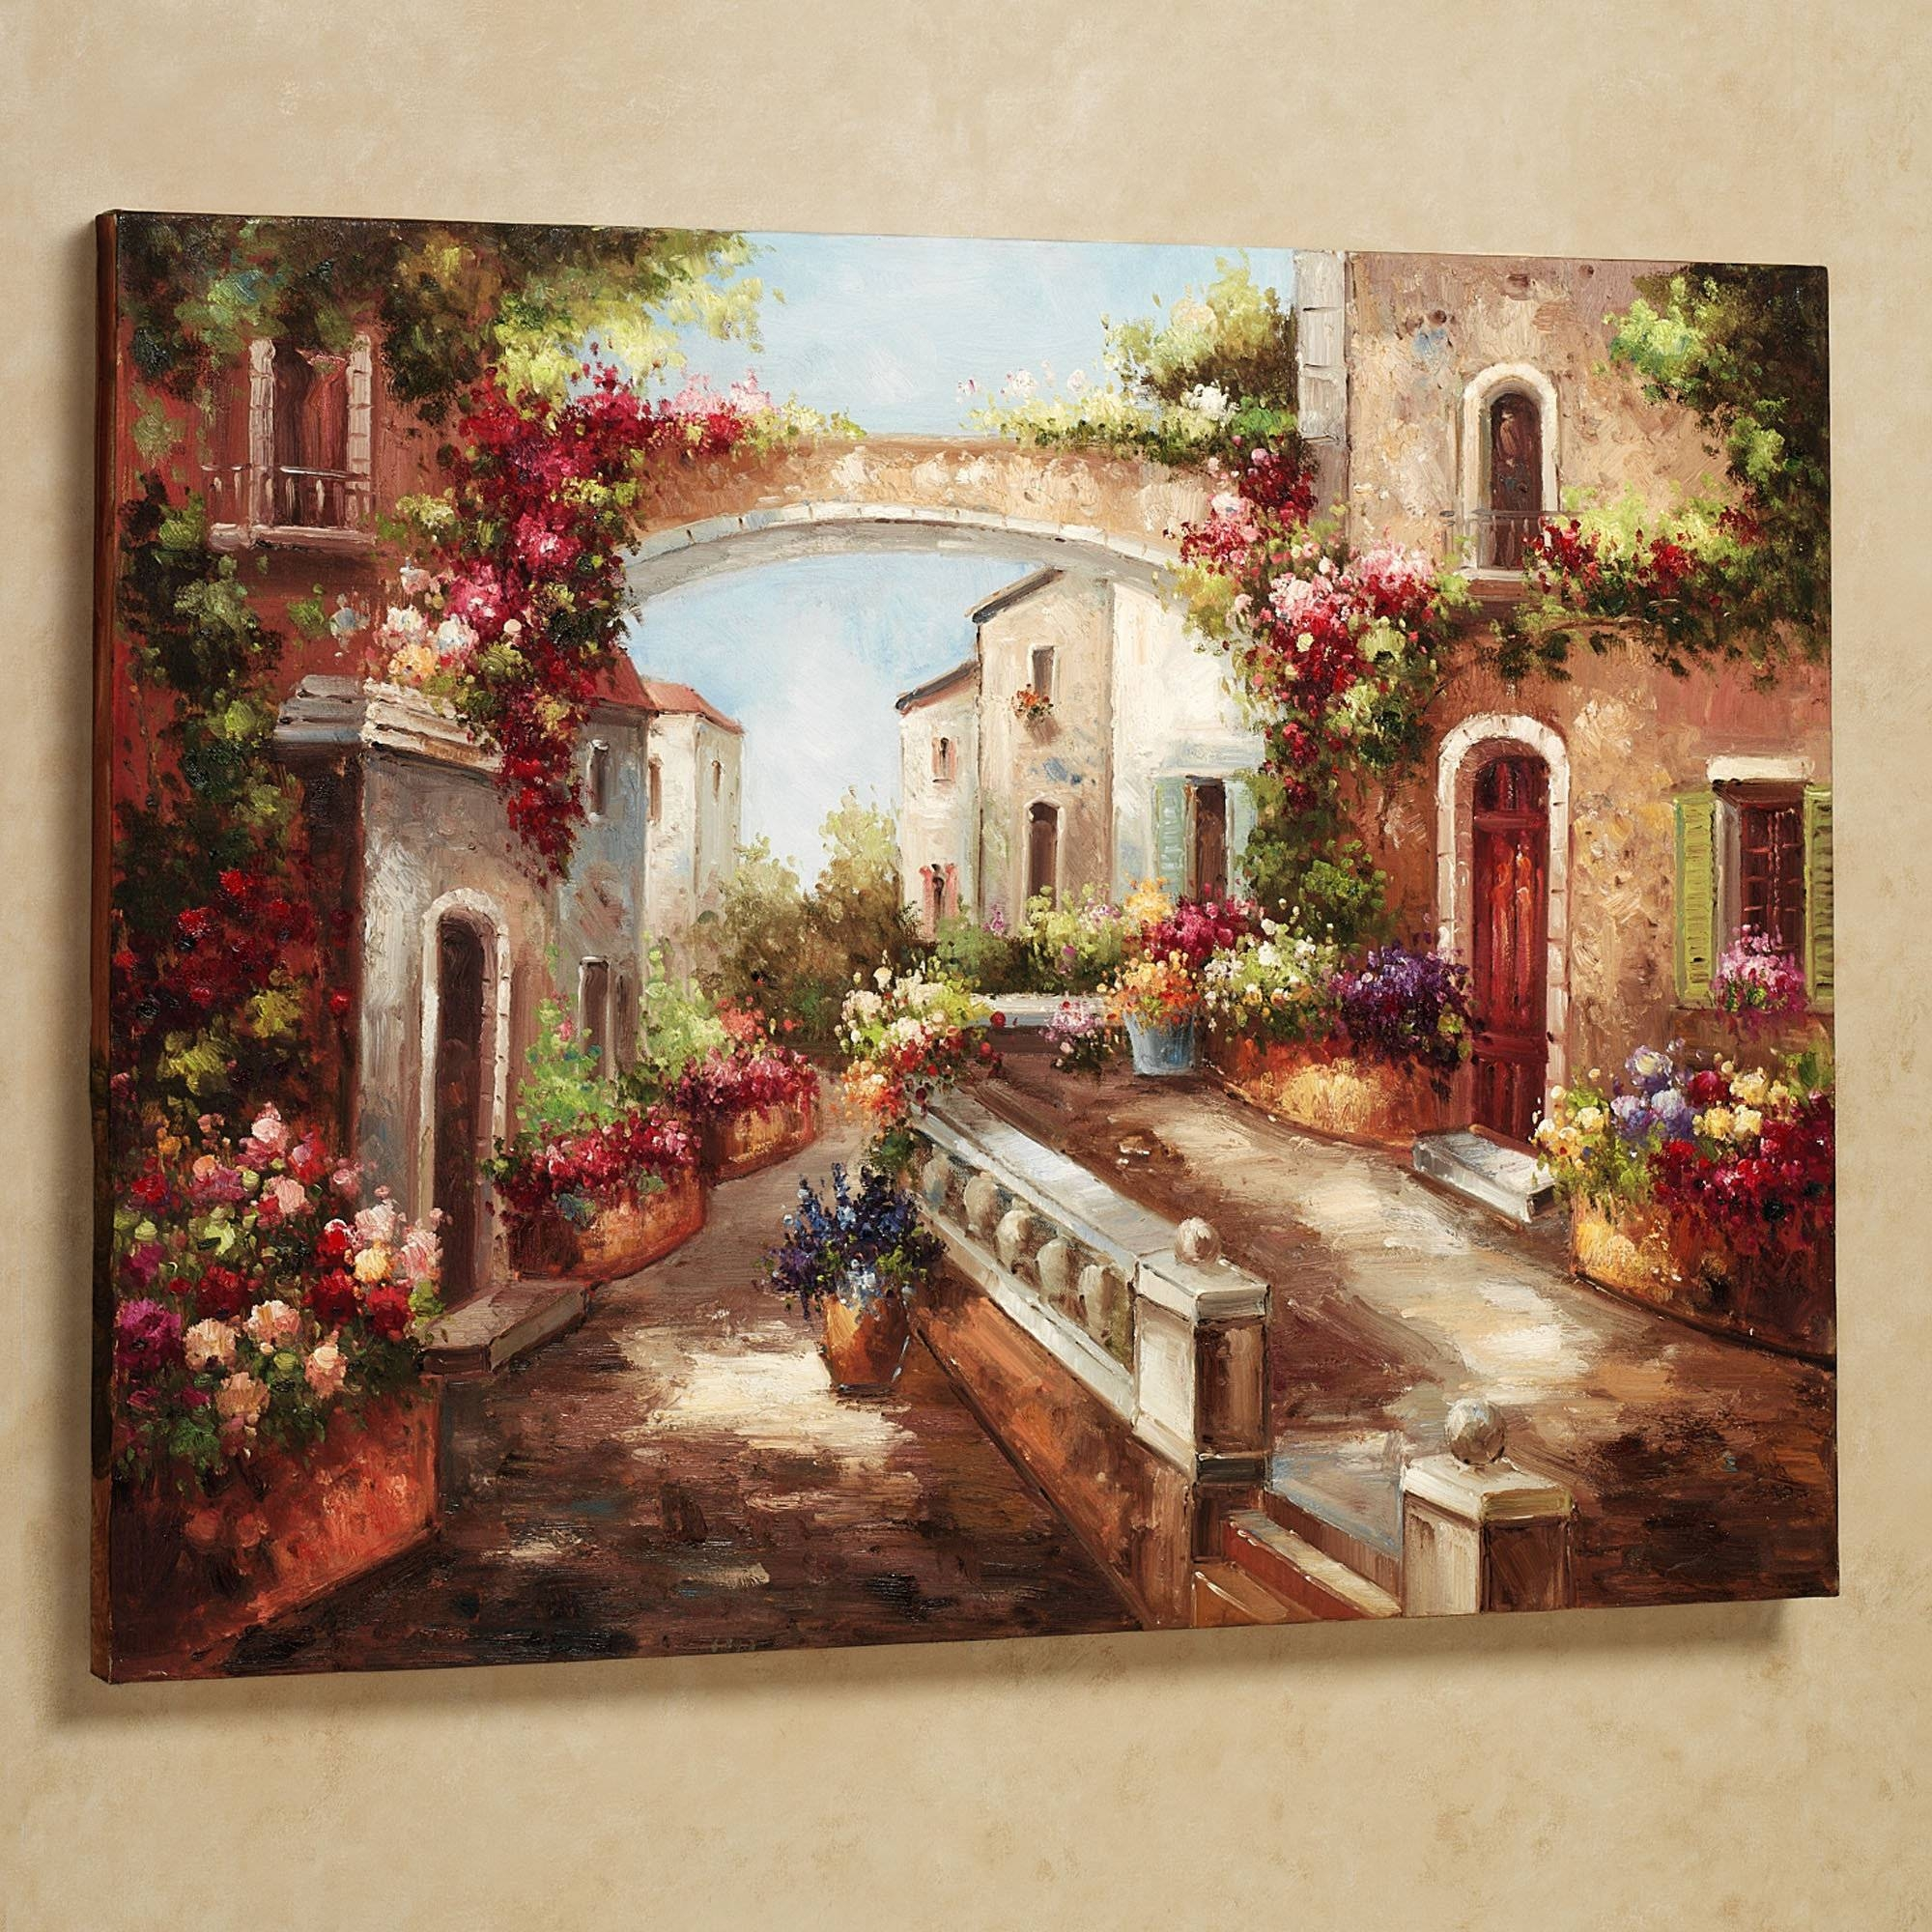 Wall Art Designs: Tuscan Wall Art Decor, Wayfair Home Decor Tuscan Inside 2018 Italian Wall Art Decor (View 9 of 30)